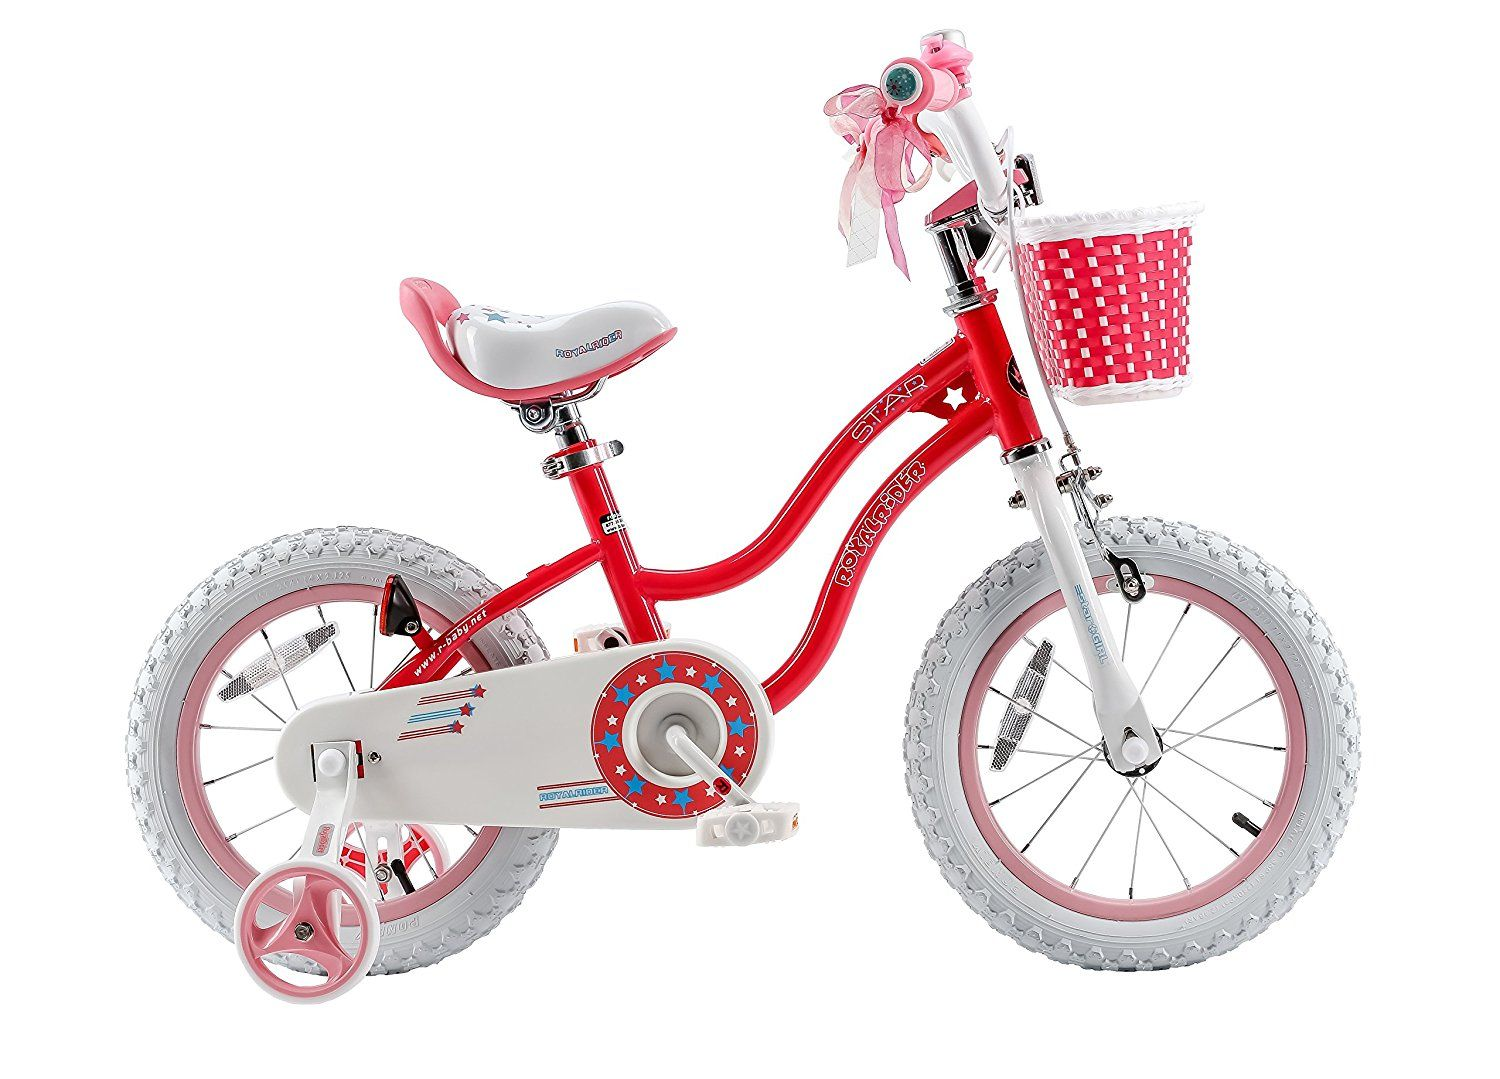 Amazon Com Royalbaby Stargirl Girl S Bike With Training Wheels And Basket Perfect Gift For Kids 12 Inch 1 Kids Bike Bike With Training Wheels Bicycle Girl